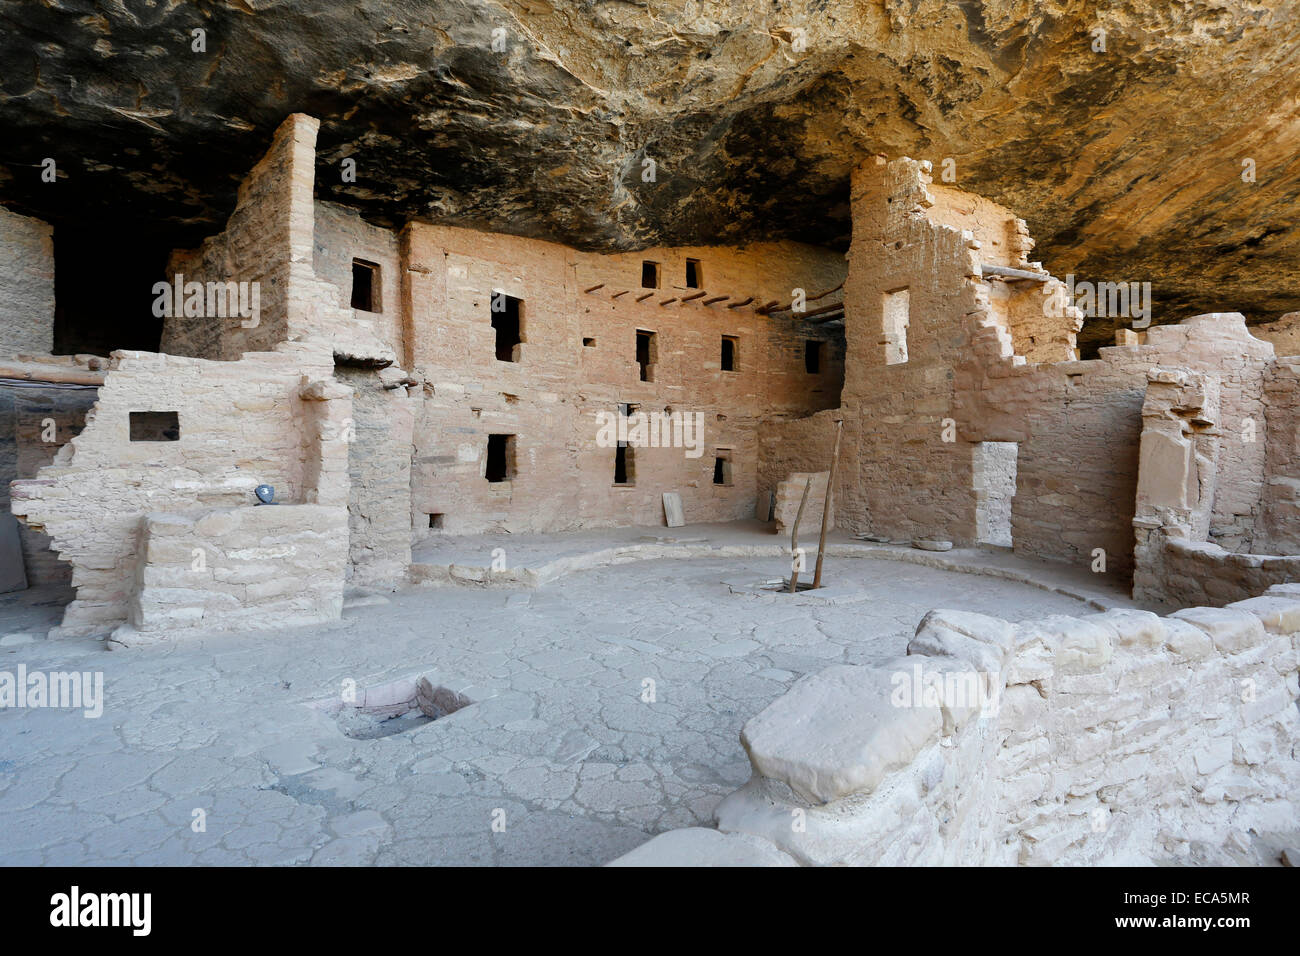 Spruce Tree House, cliff dwellings of the Anasazi, Mesa Verde National Park, Colorado, United States - Stock Image